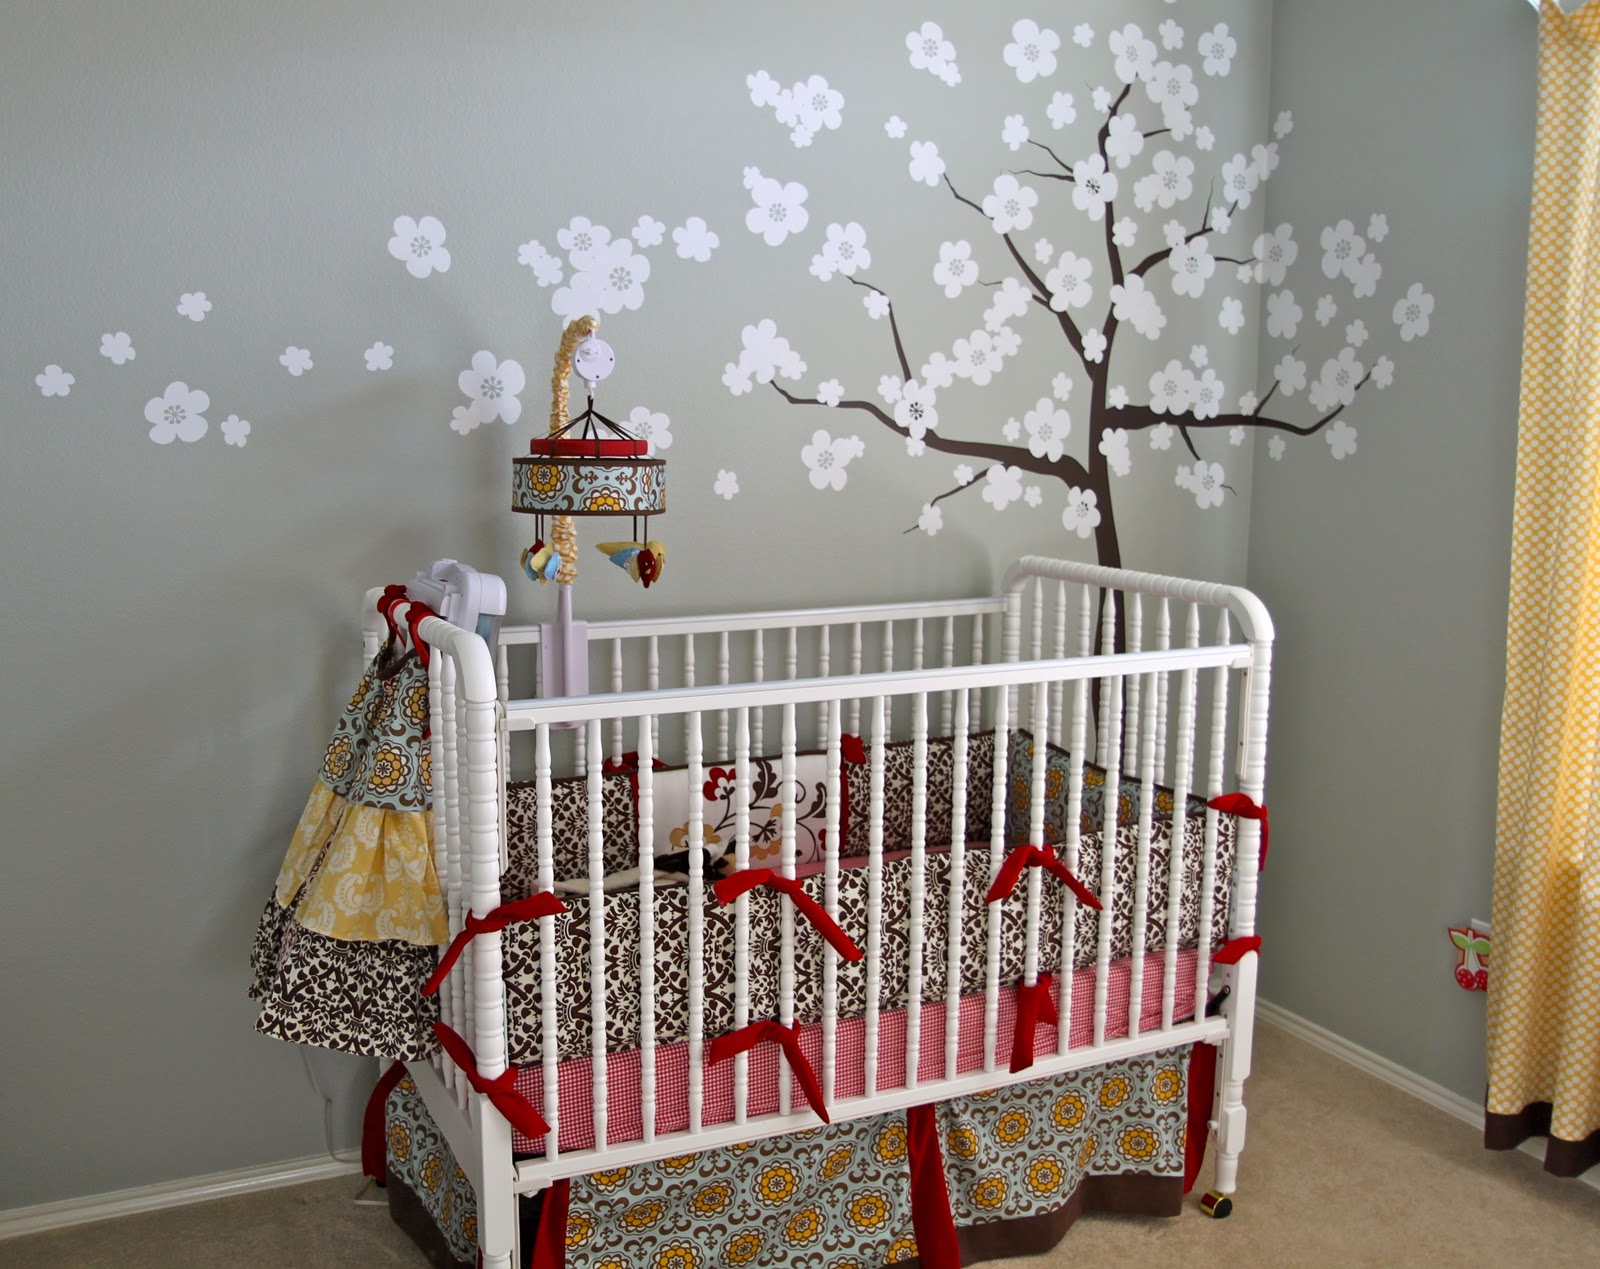 Baby nursery it 39 s quirky and so cute design dazzle for Baby bedroom design